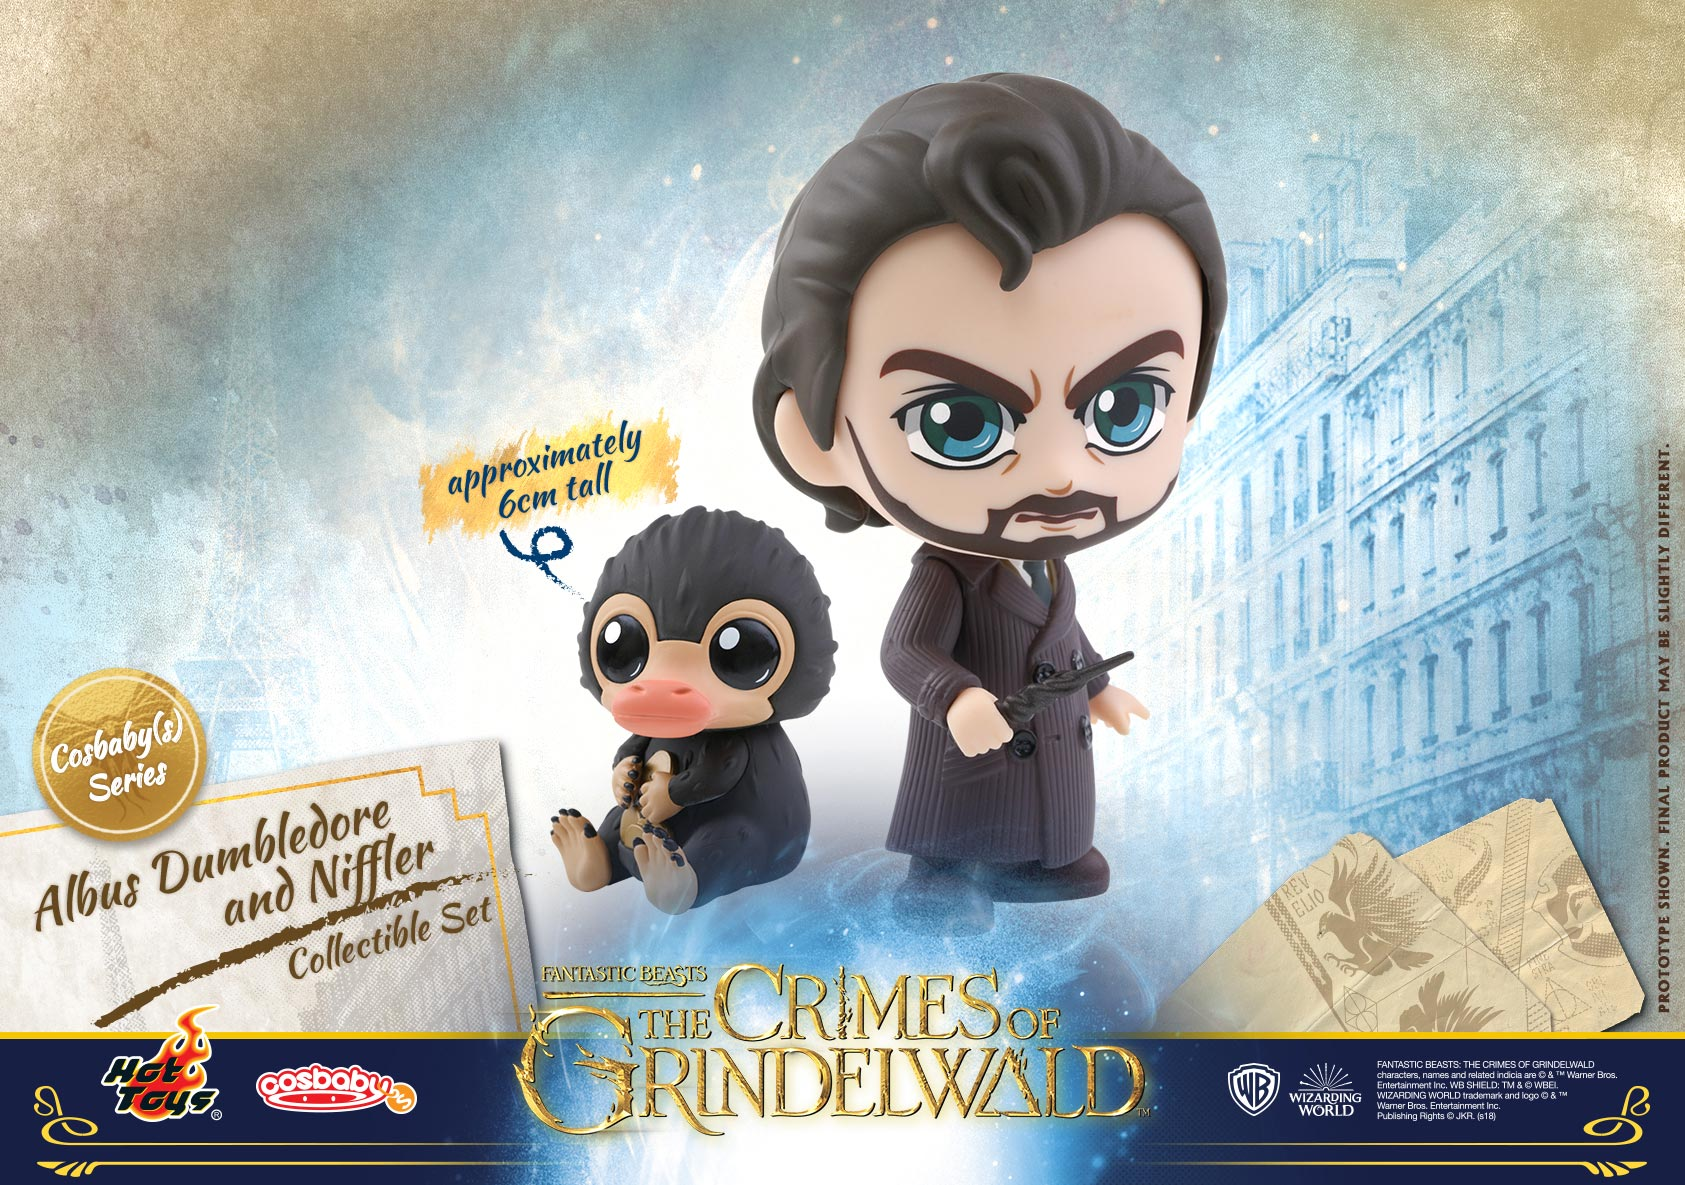 Hot-Toys---Fantastic-Beasts-2---Albus-Dumbledore-and-Niffler-Cosbaby-(S)-Collectible-Set_PR1